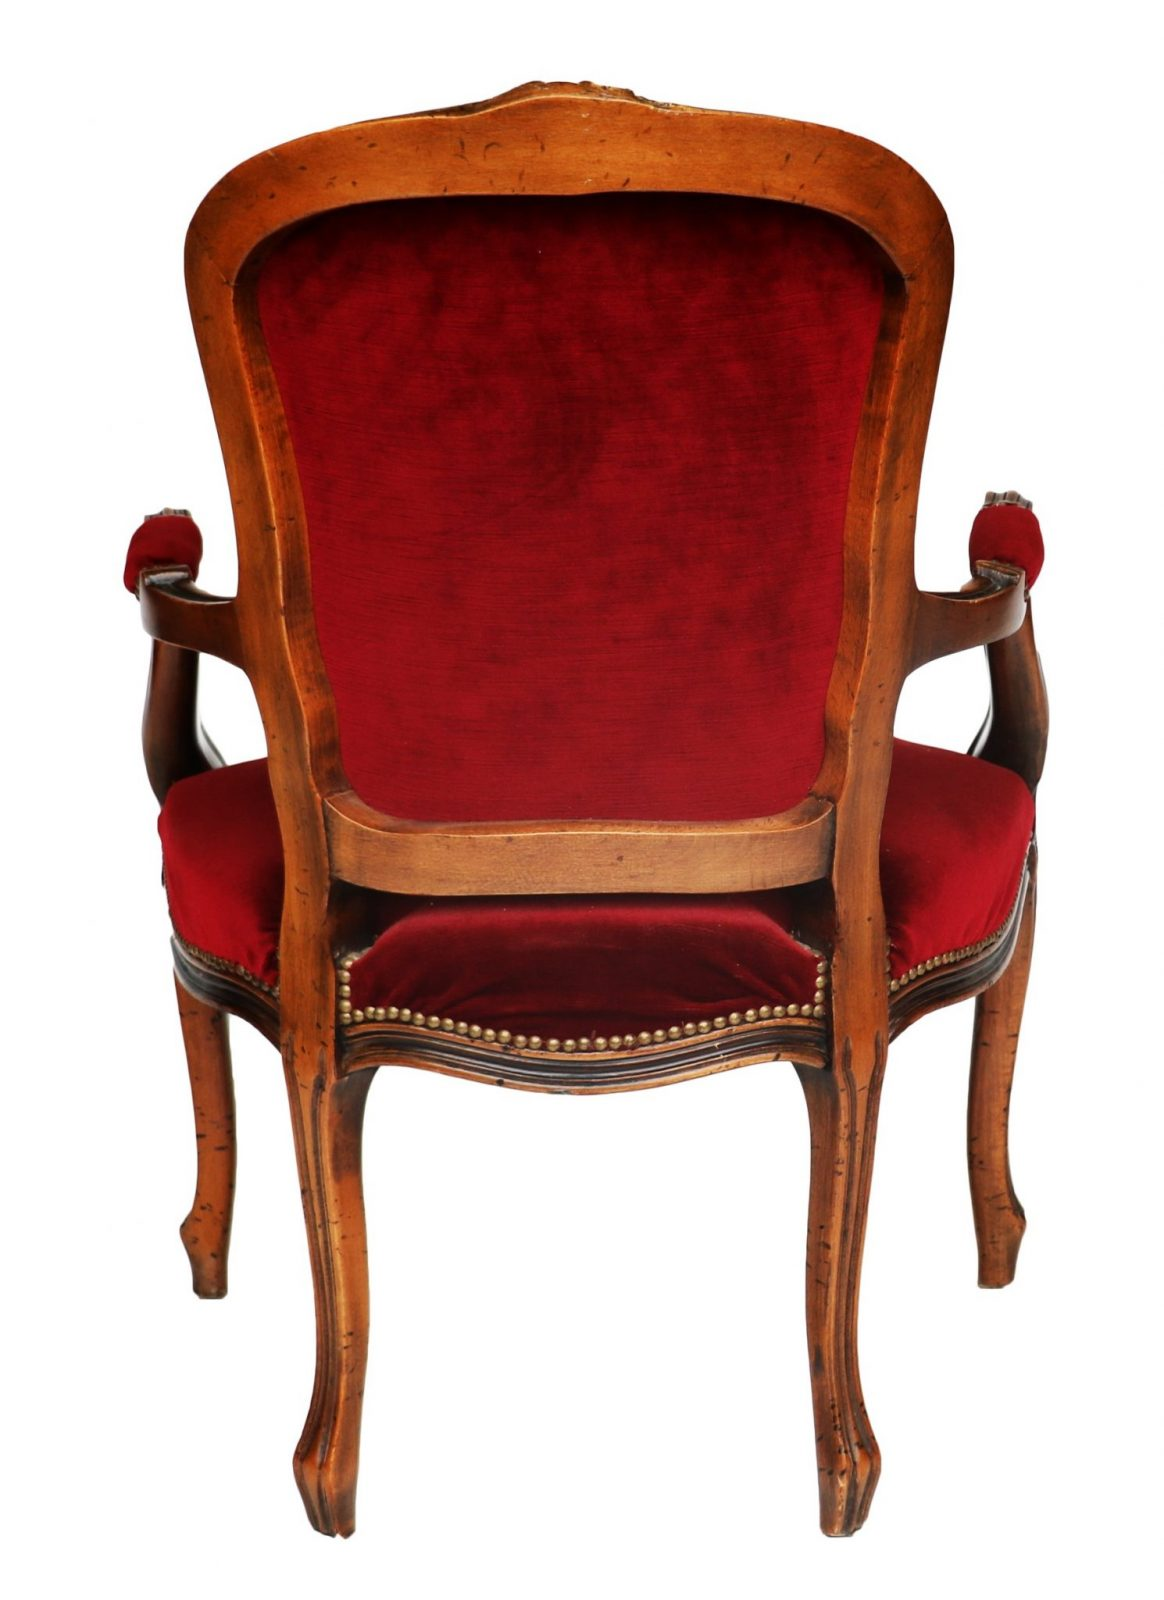 French louis xv style walnut and upholstered fauteuil armchair - Fauteuil louis xv moderne ...